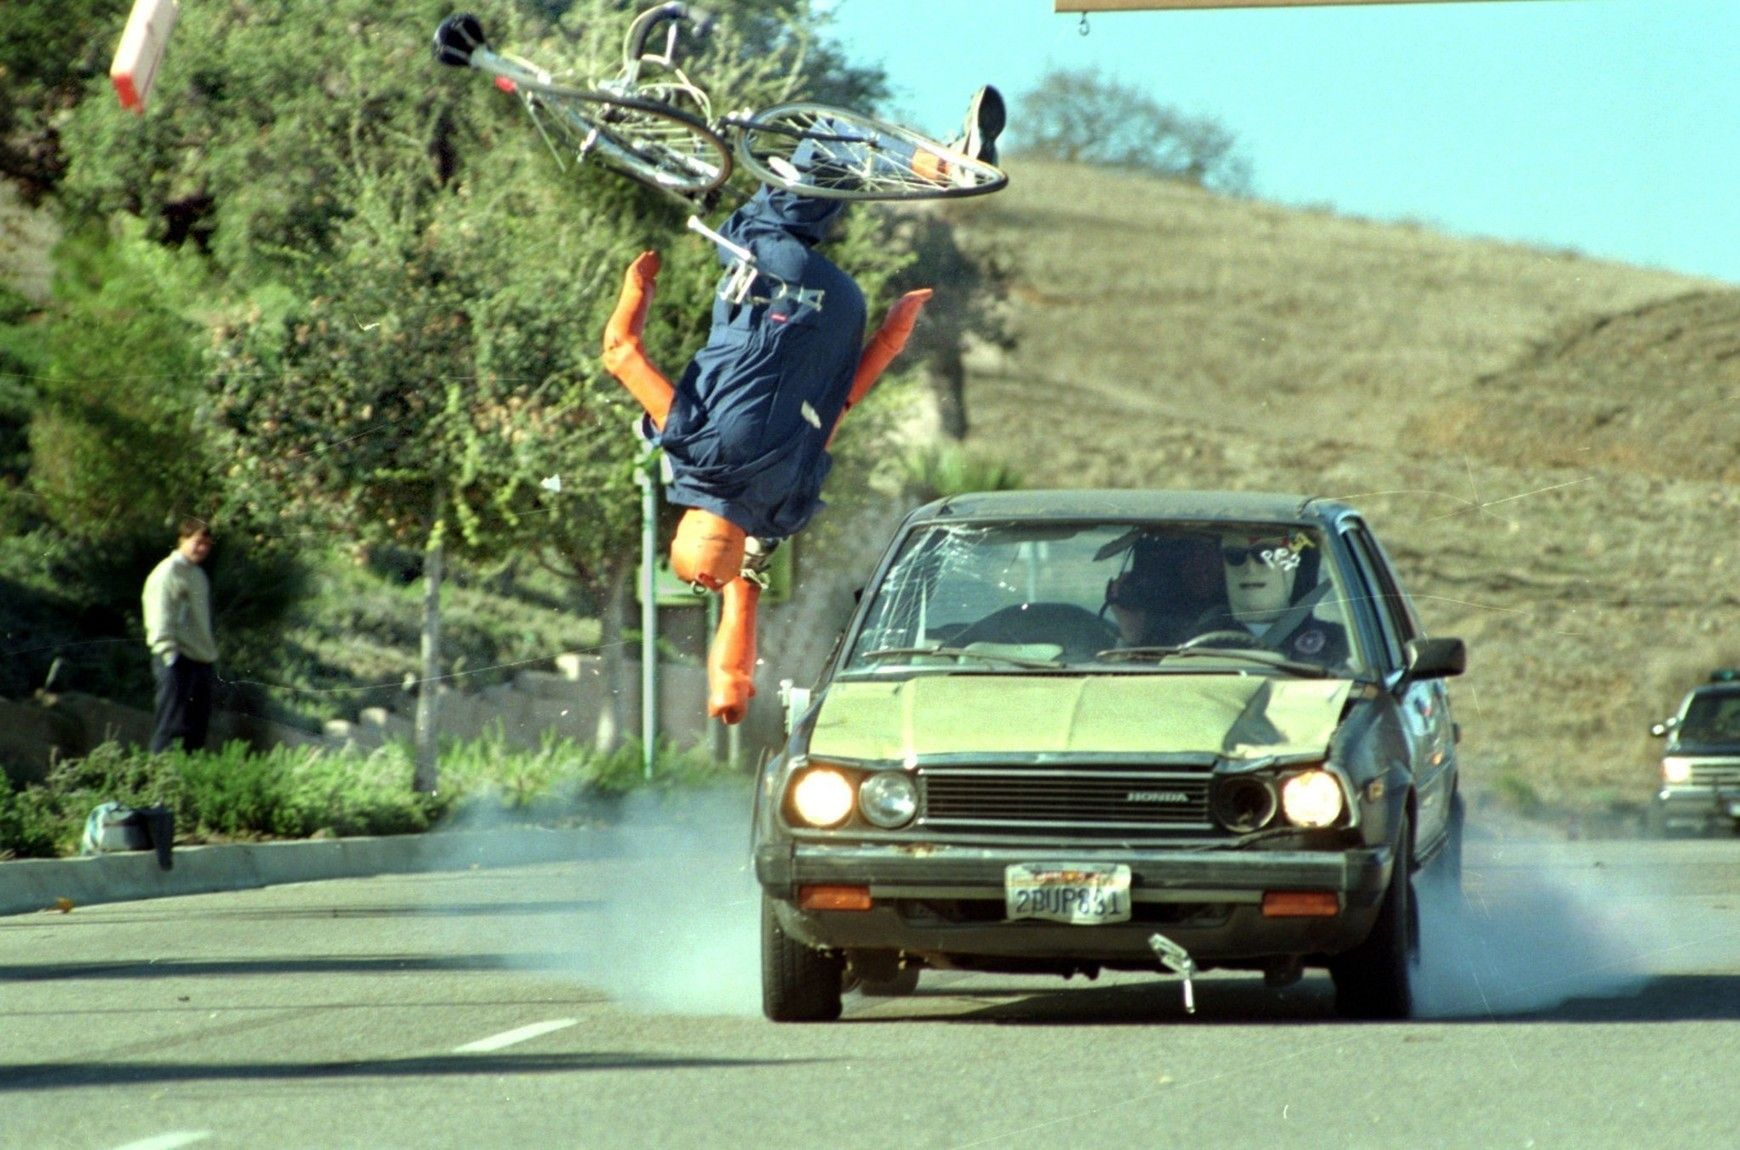 Bicycle Traffic Collisions Are Increasing At An Alarming Rate And